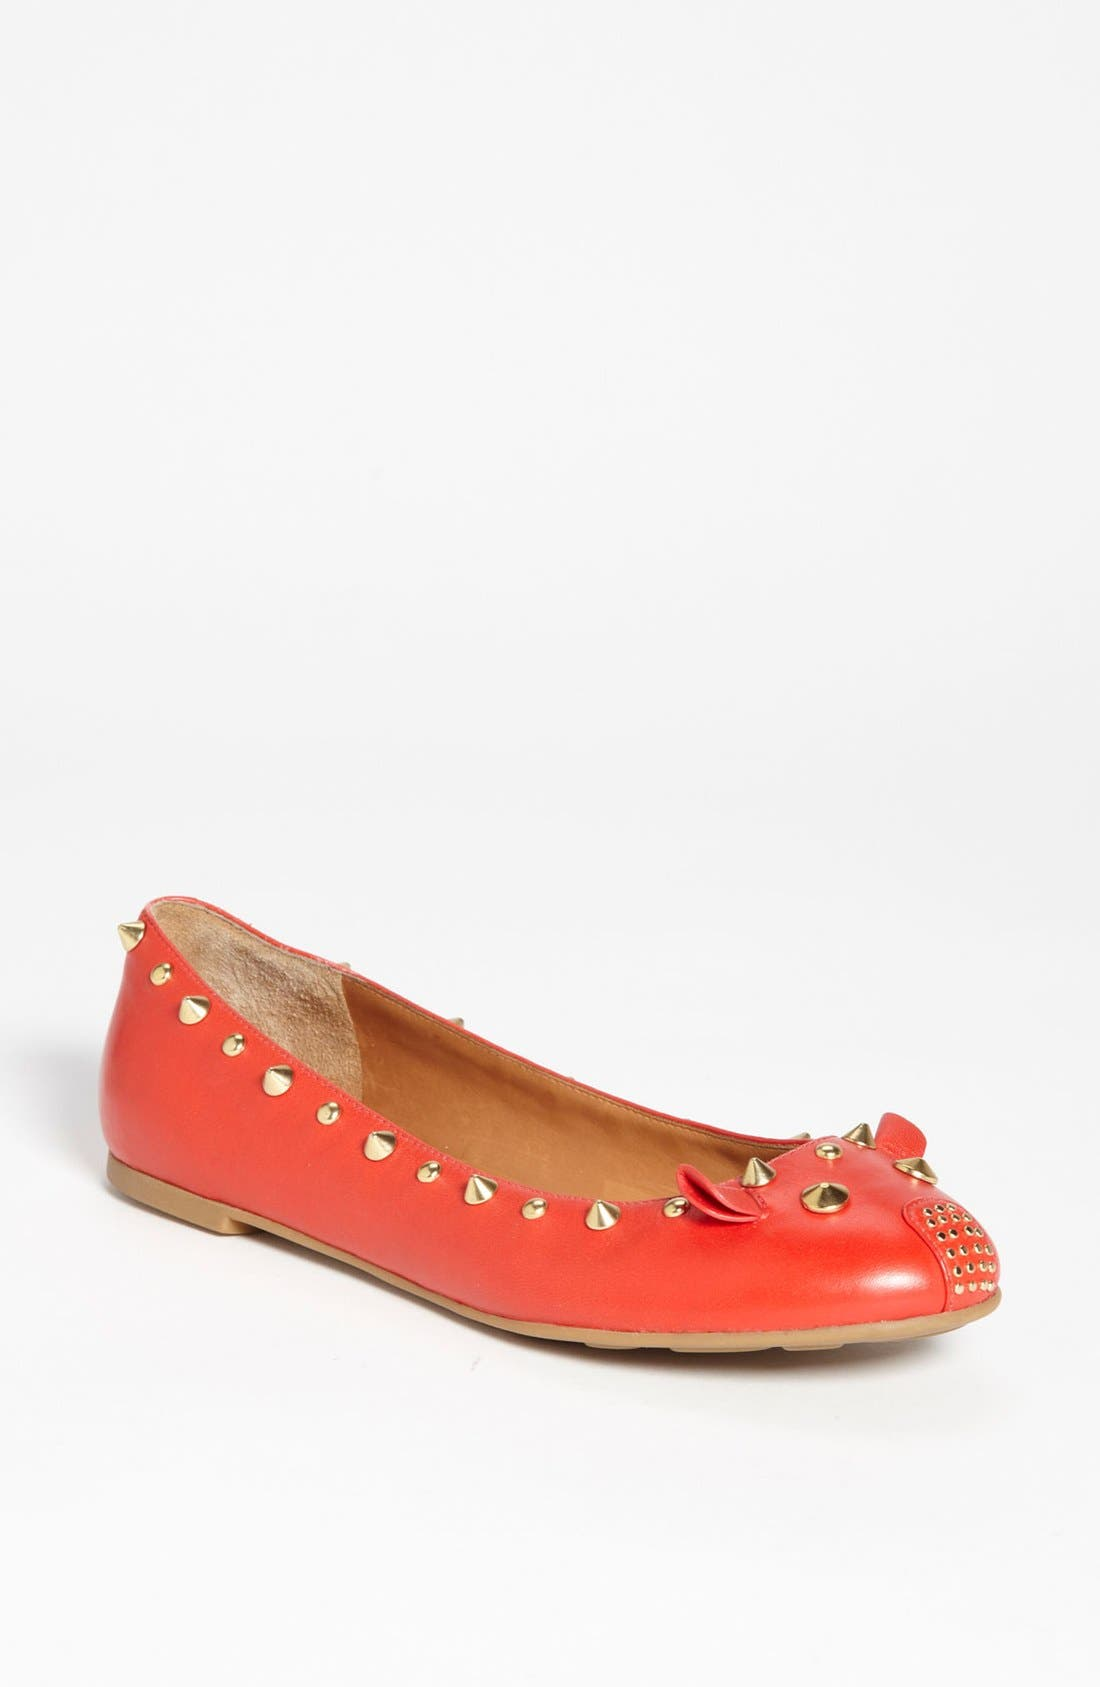 Alternate Image 1 Selected - MARC BY MARC JACOBS 'Mouse' Ballerina Flat